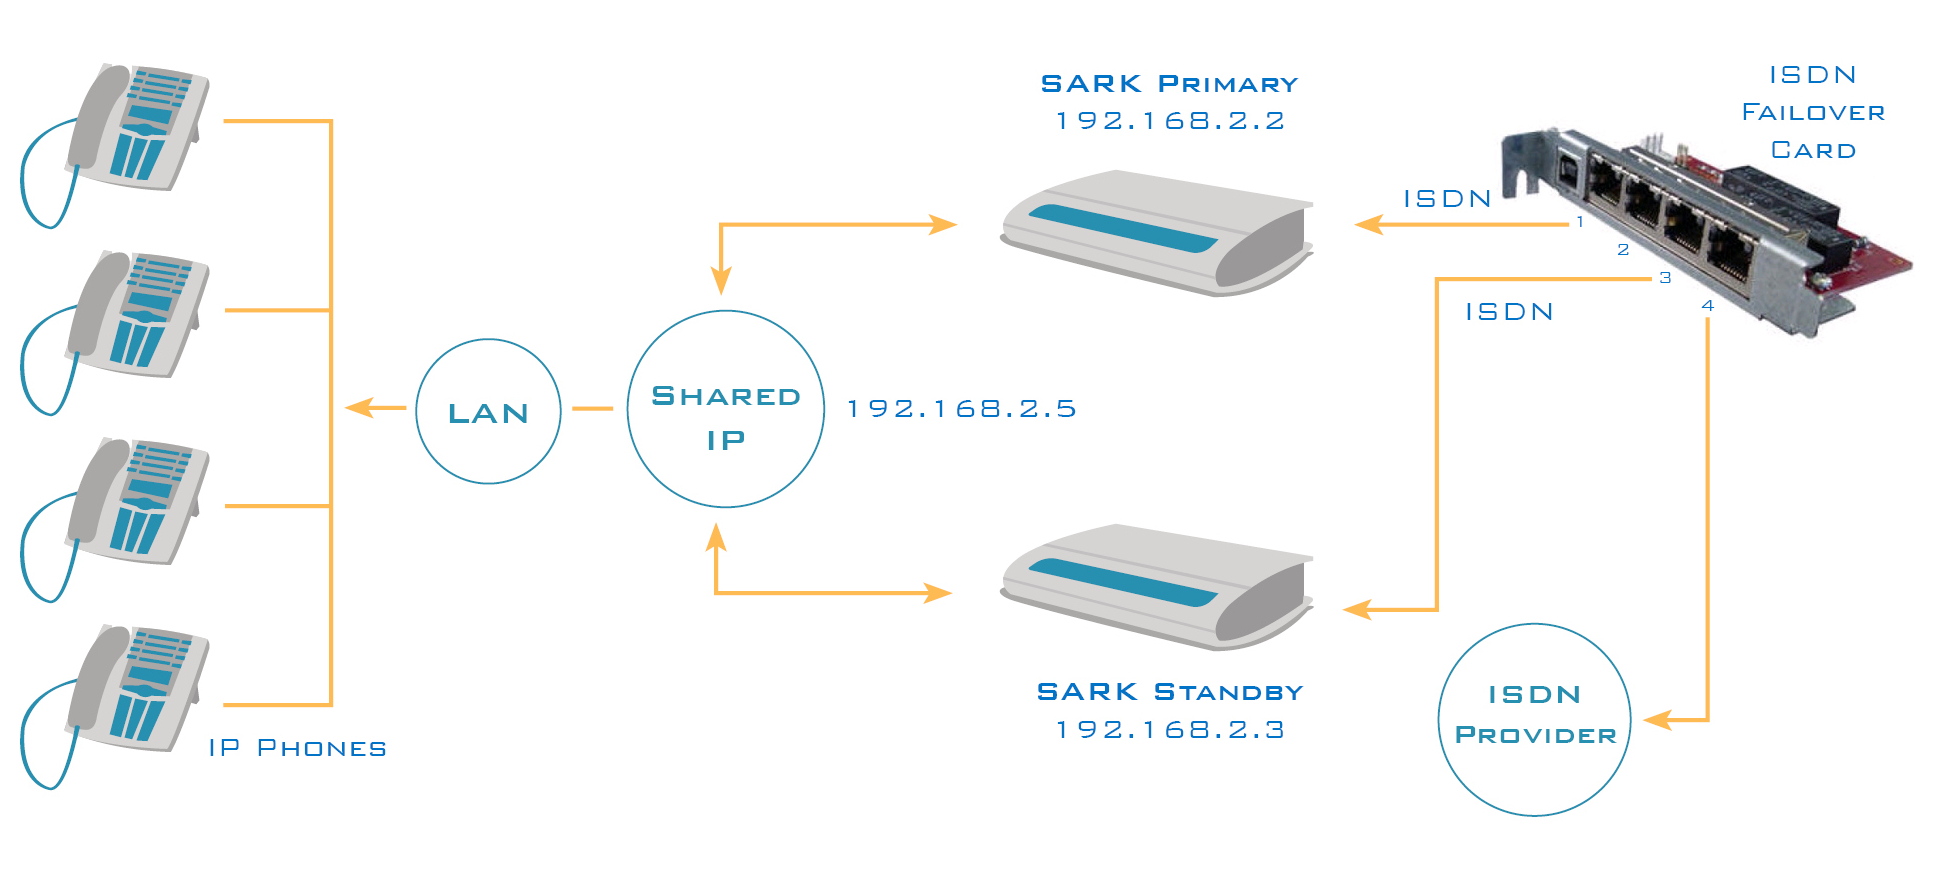 ISDN failover using Rhino failover cards in HA System